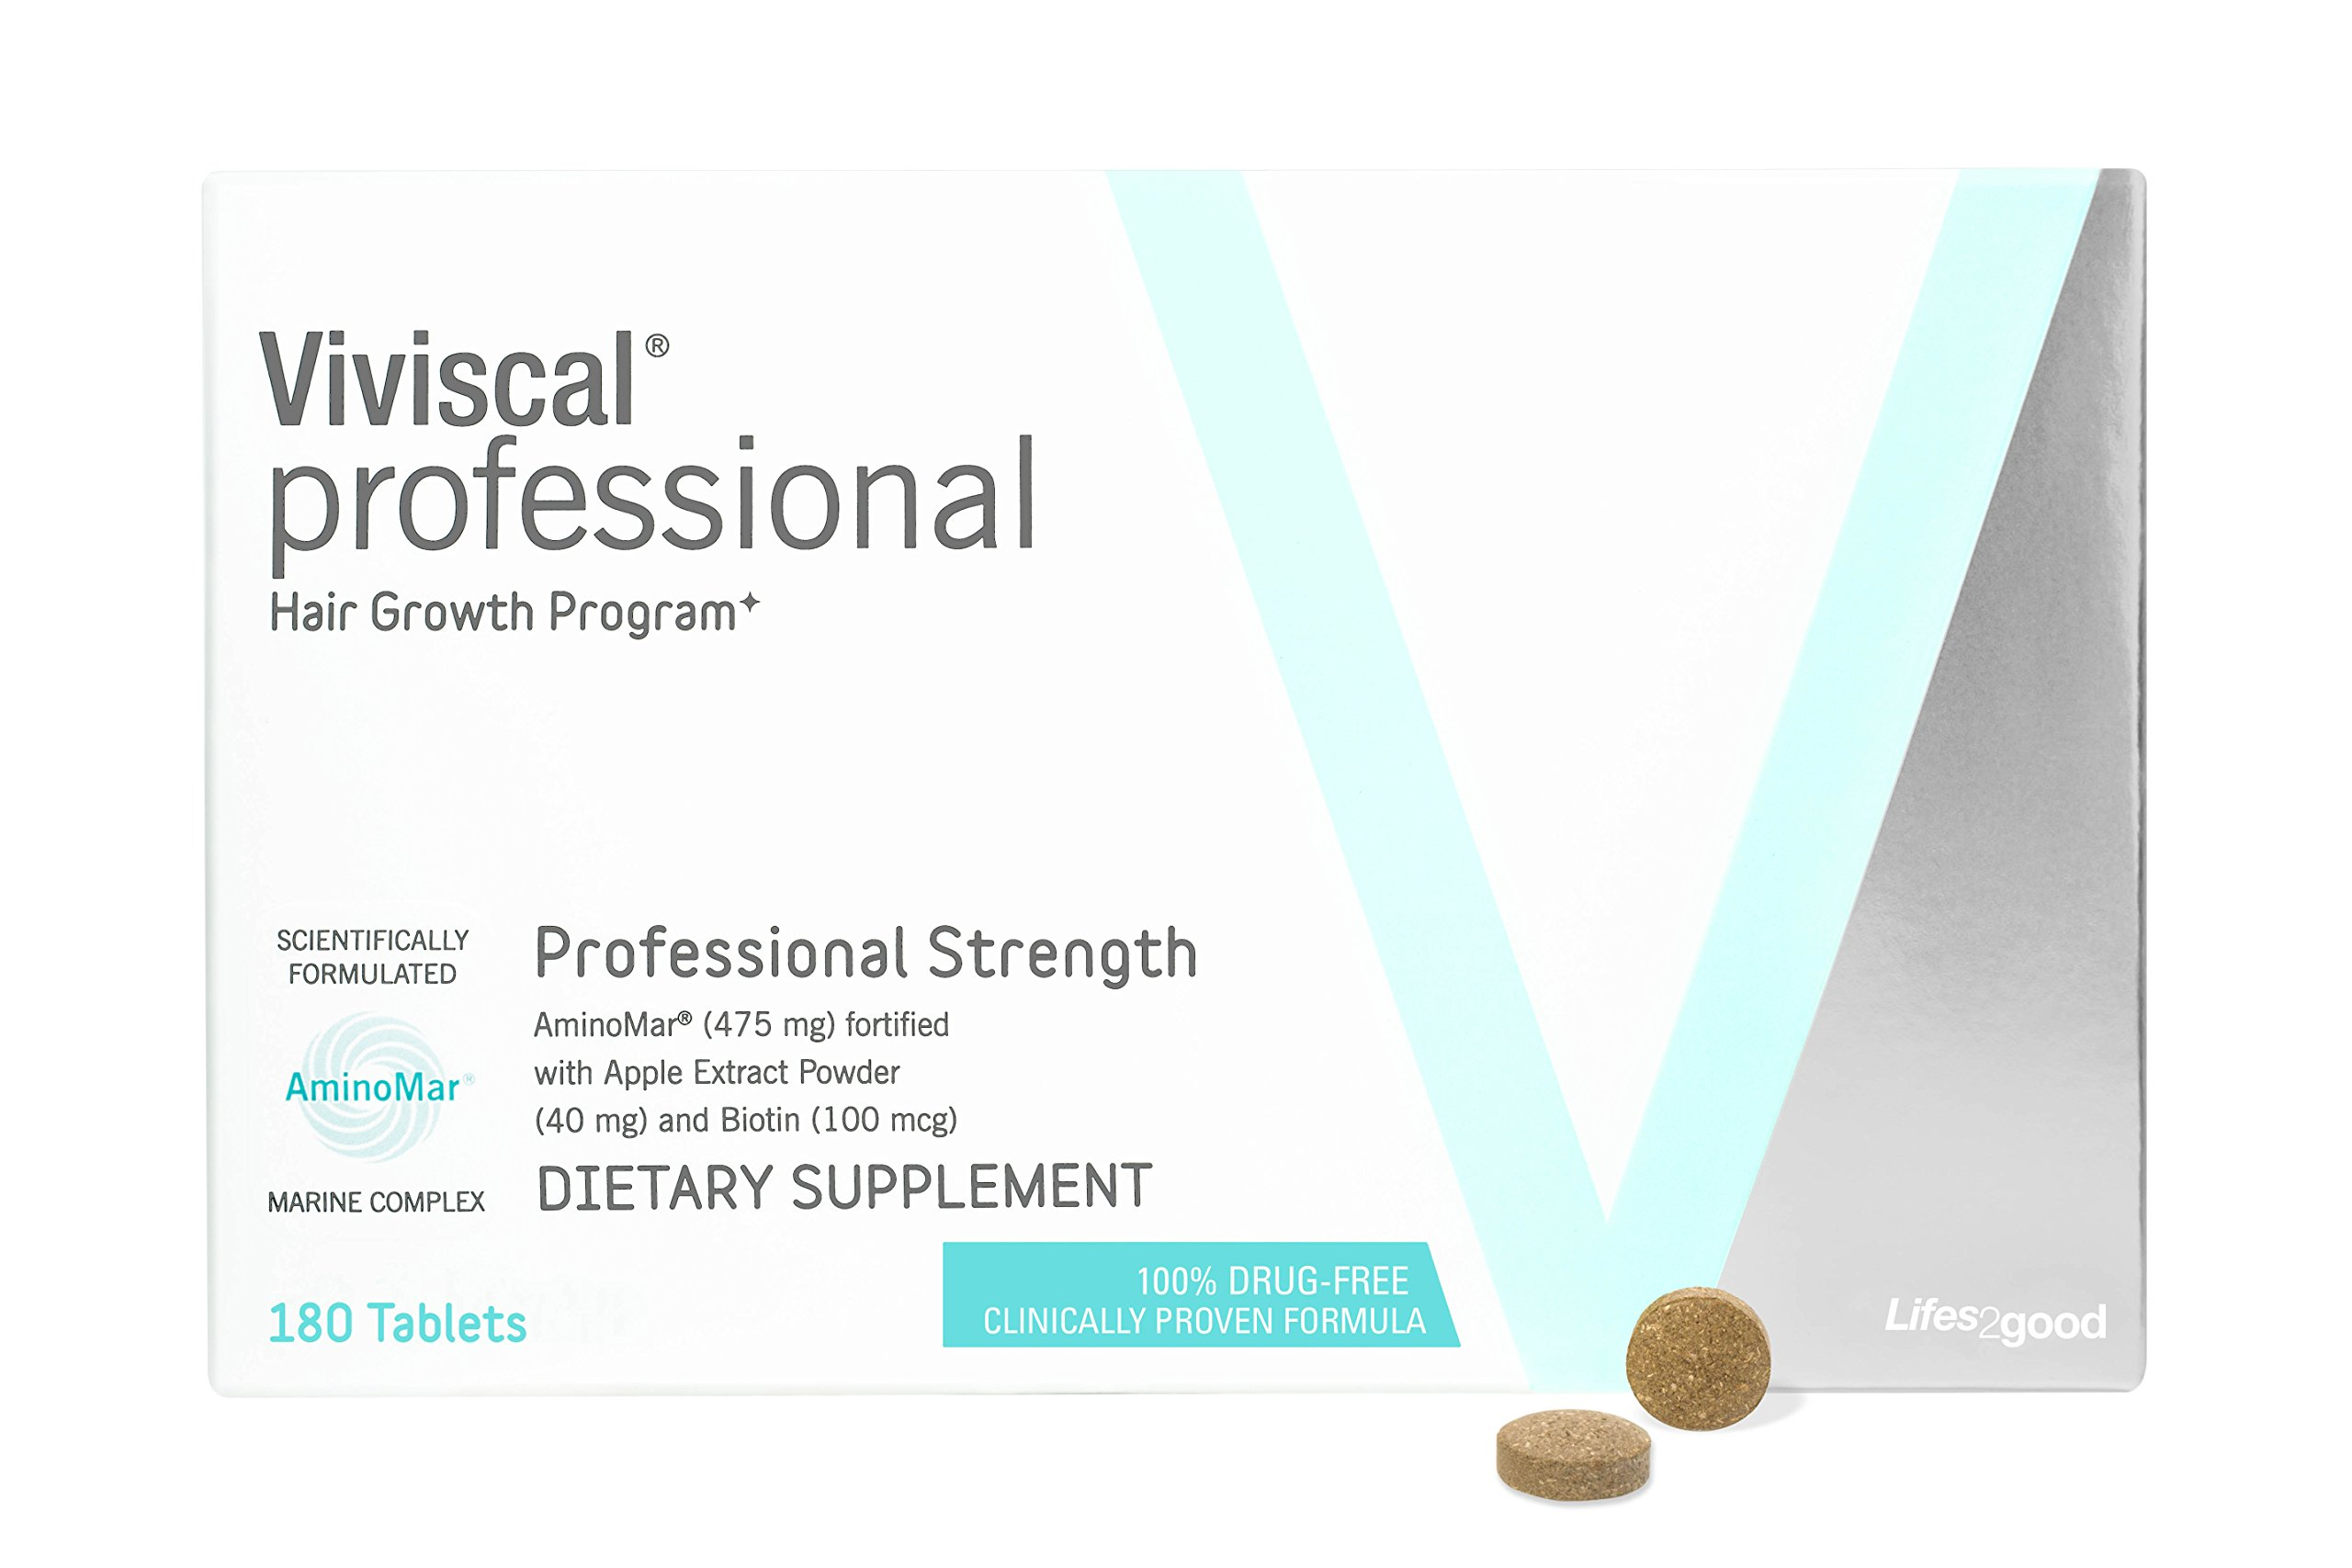 VIVISCAL PROFESSIONAL PRO: Hair Growth Dietary Supplement 180 tablets 90 Day Supply by Viviscal (Image #2)